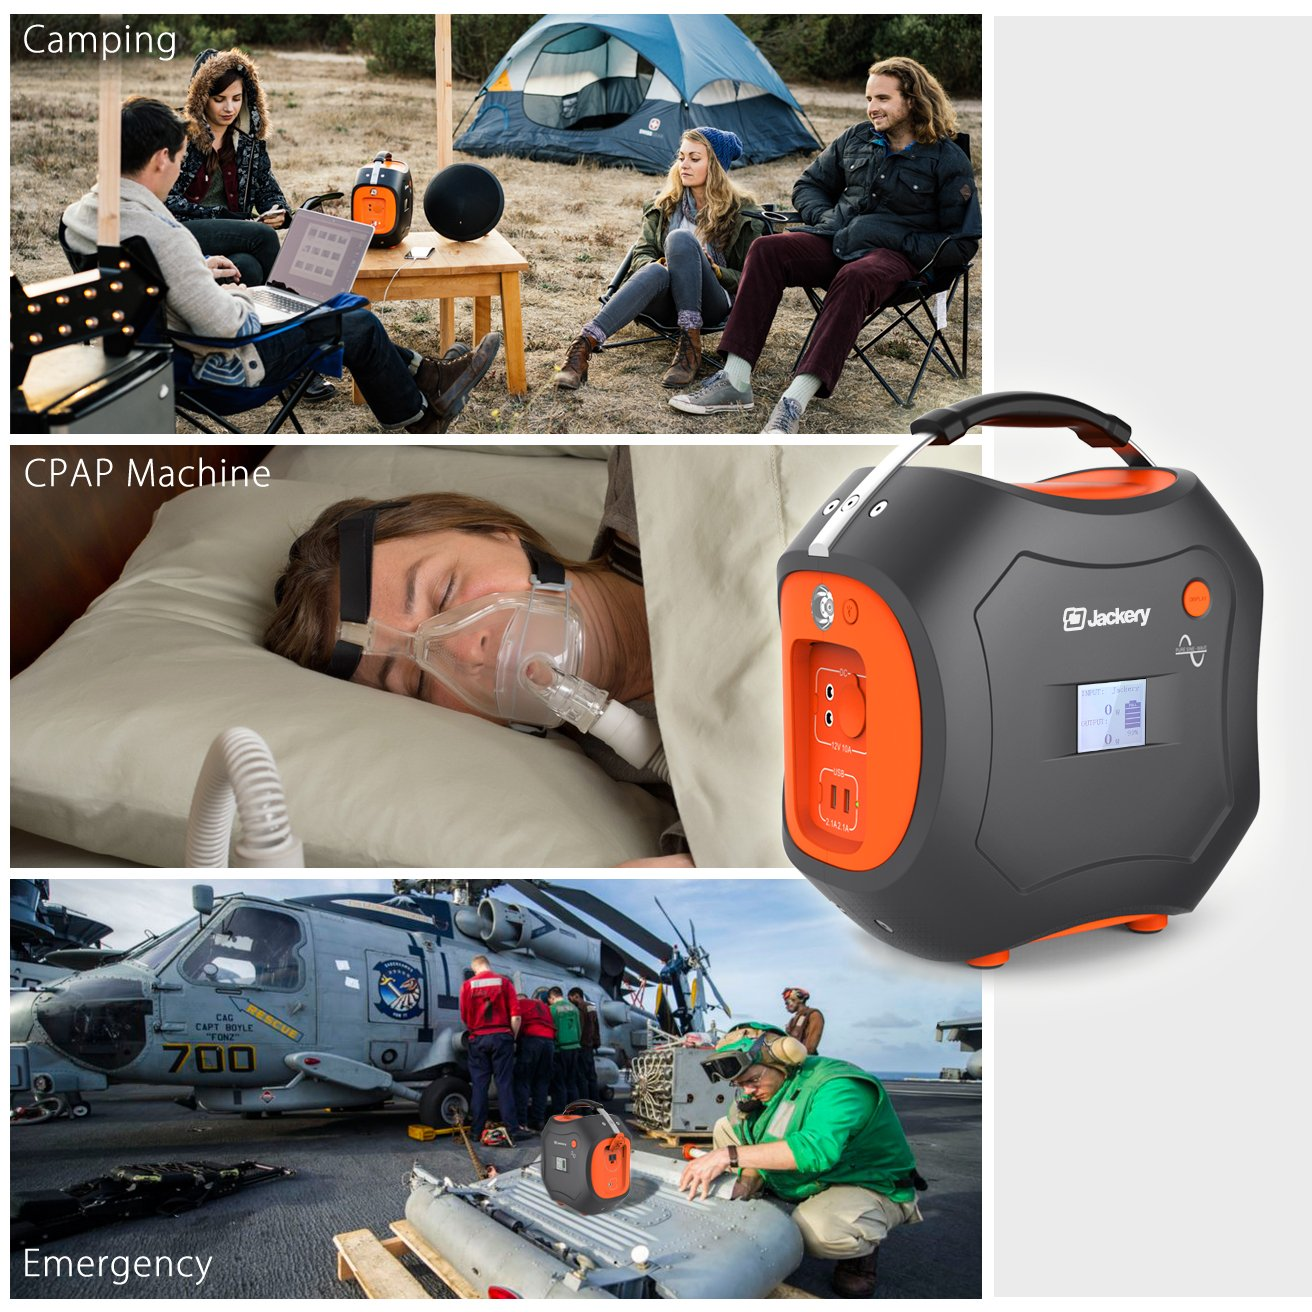 500Wh Portable Generator, Jackery Explorer / Power Pro Rechargeable Lithium Battery Pack Quiet Generator with 110V / 300W AC Outlet, 12V Car, USB Output Clean Off-grid Emergency Power Pack for Camping by Jackery (Image #6)